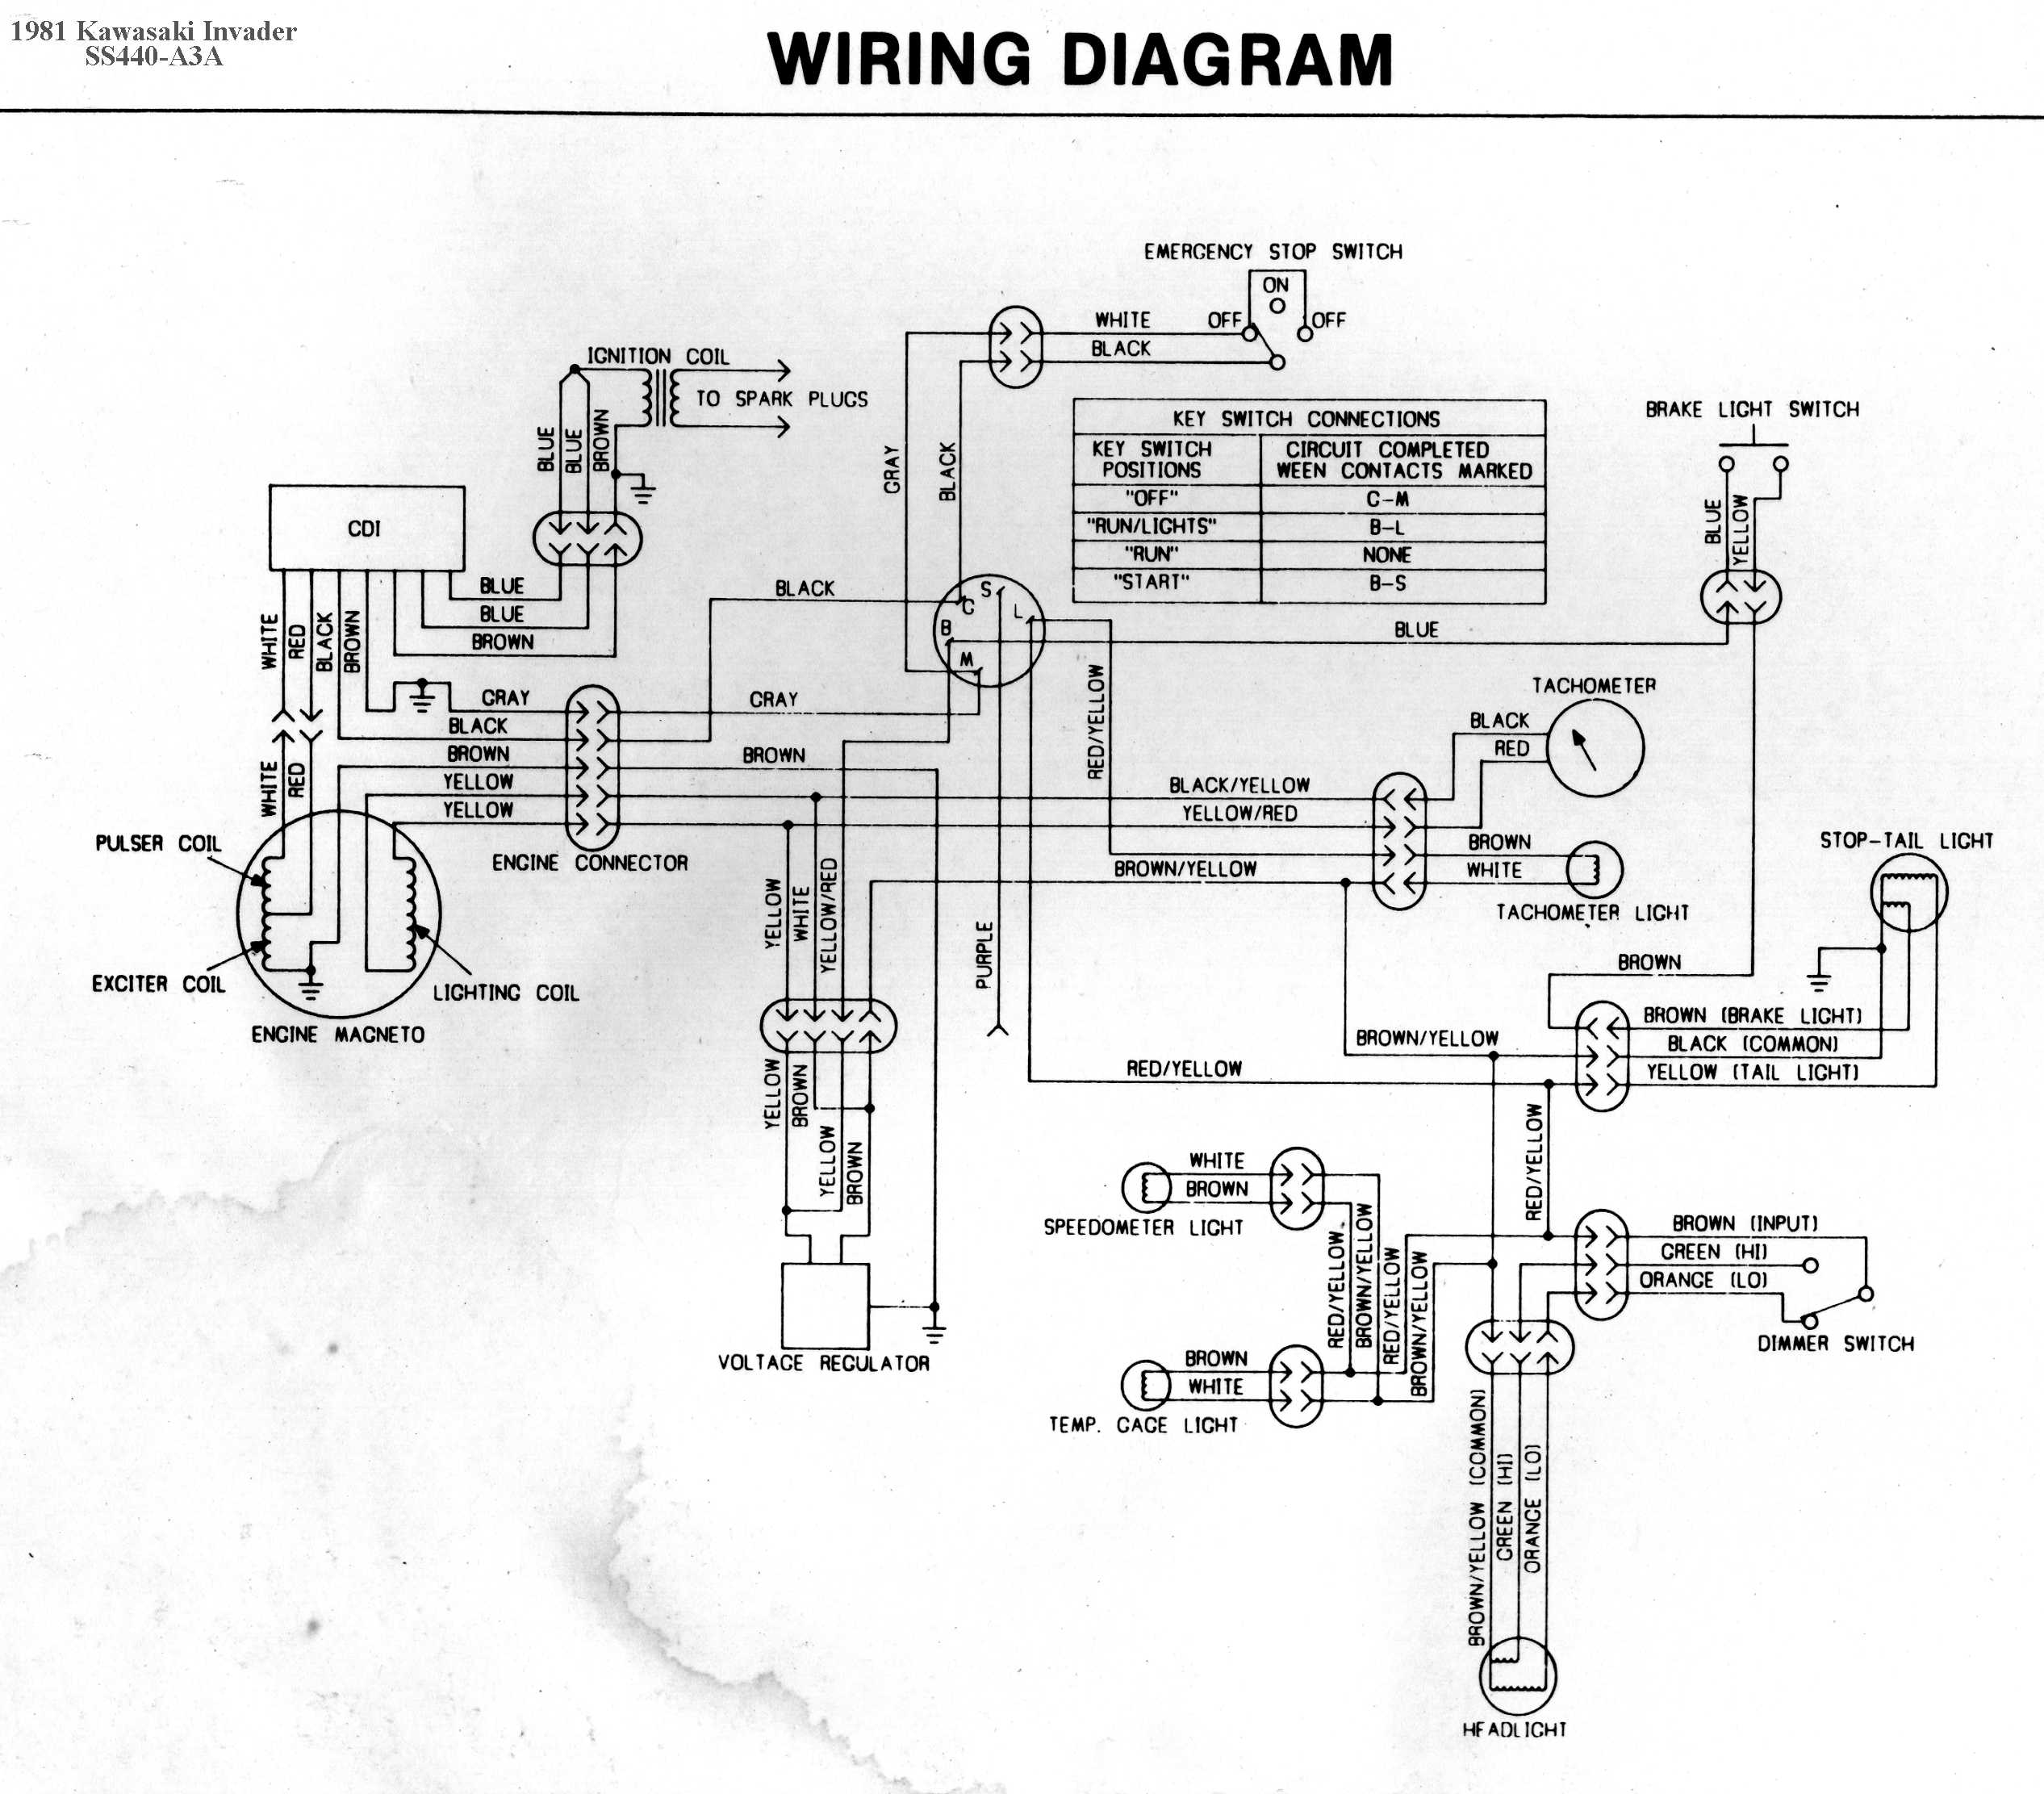 ss440a3a kawasaki invader snowmobile wiring diagrams wiring diagram ski doo snowmobile at pacquiaovsvargaslive.co